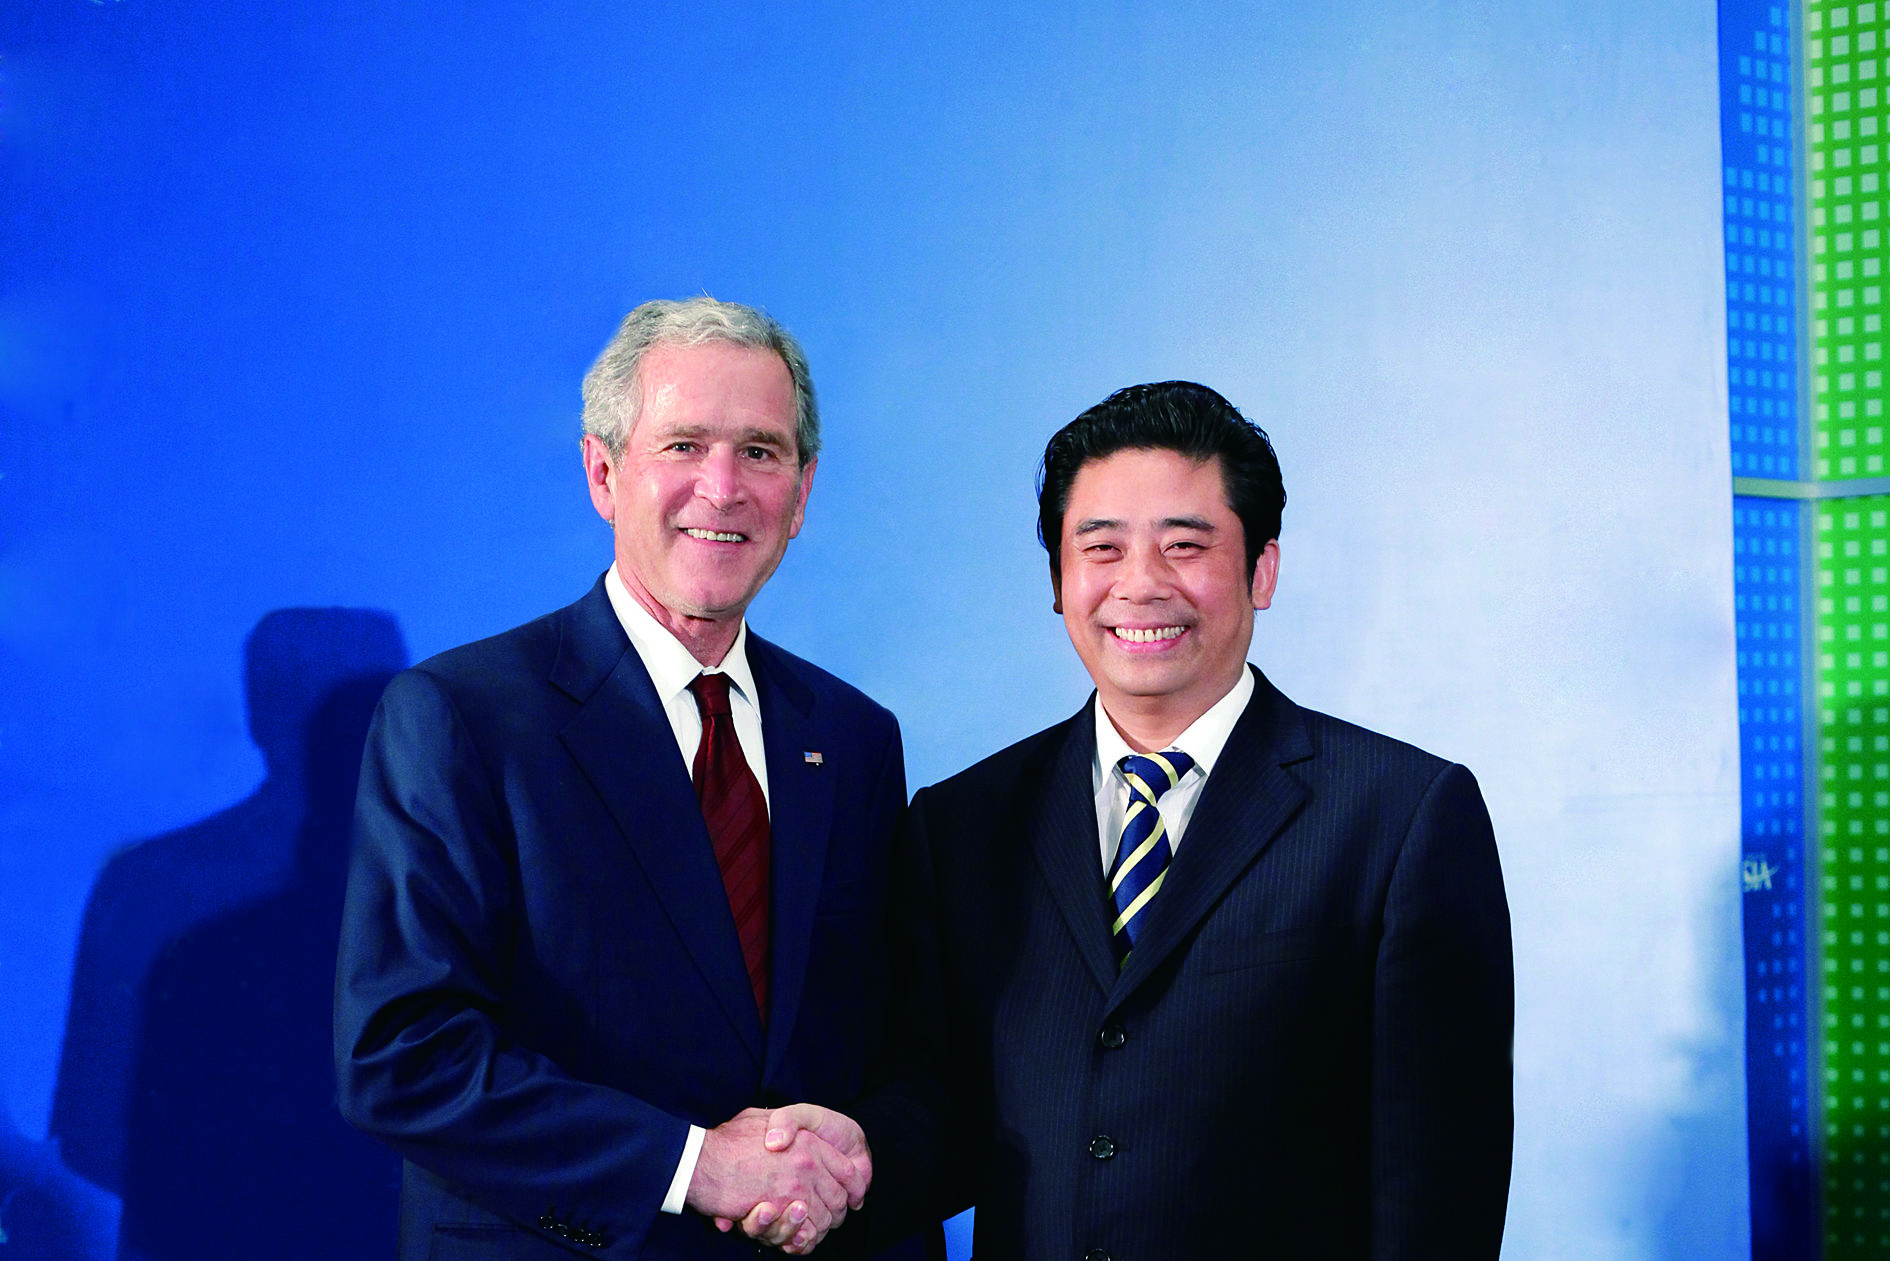 Mr. Junqing Lu meeting with George W. Bush, former President of the United States